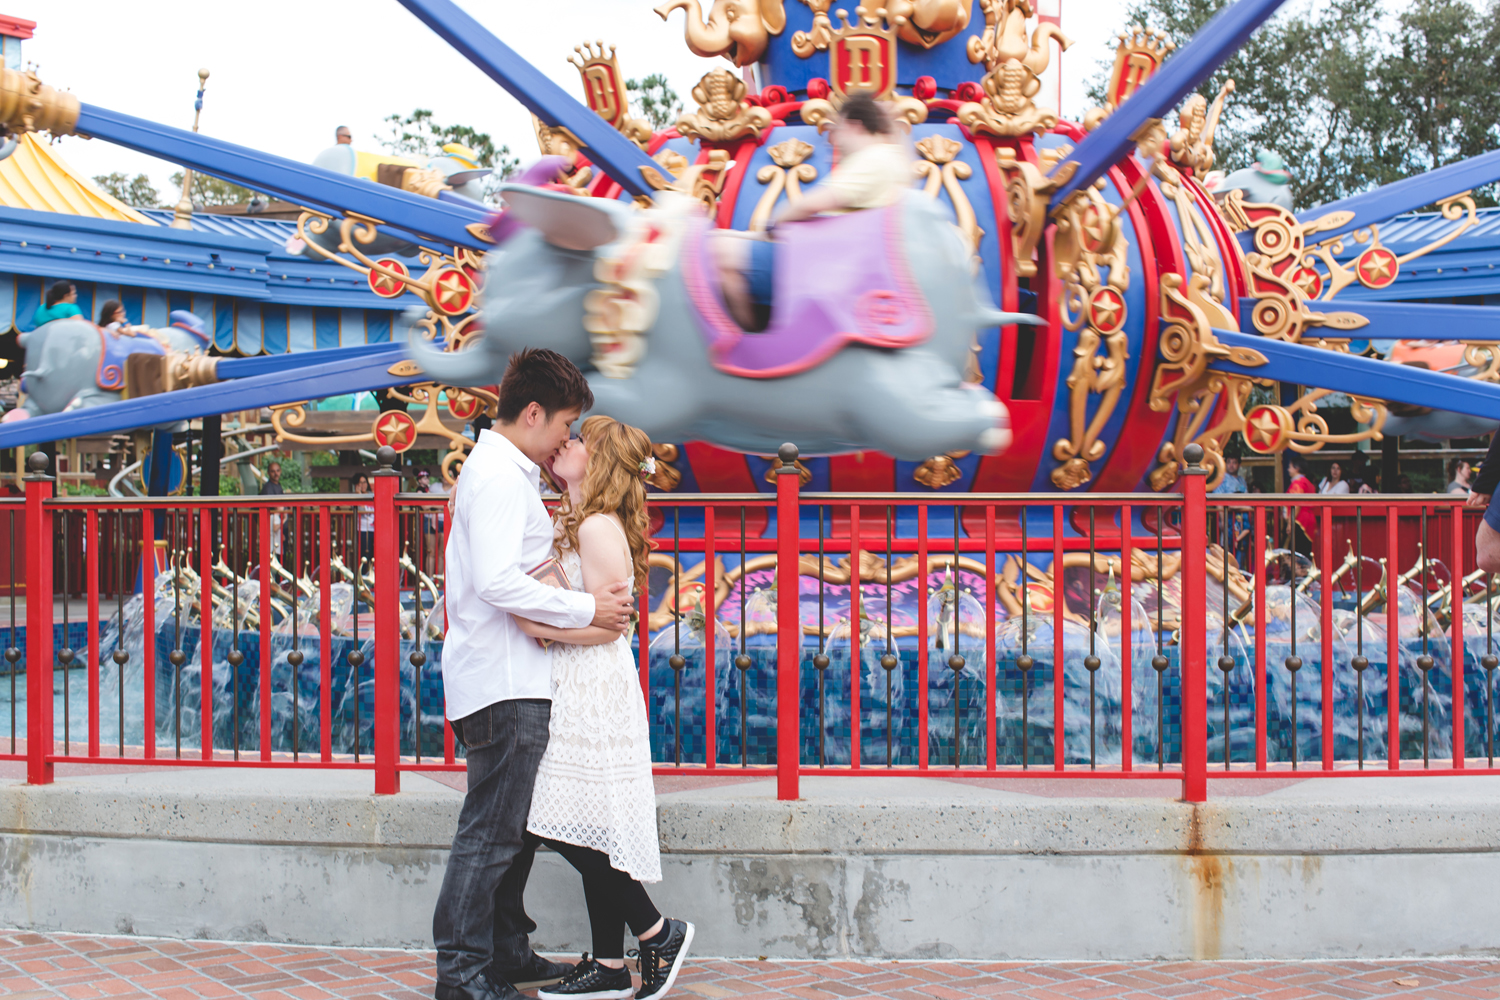 Disney Honeymoon session - Disney Engagement Photos - Disney Wedding Photographer - Destination Orlando Wedding Photographer - Jaime DiOrio (29).jpg